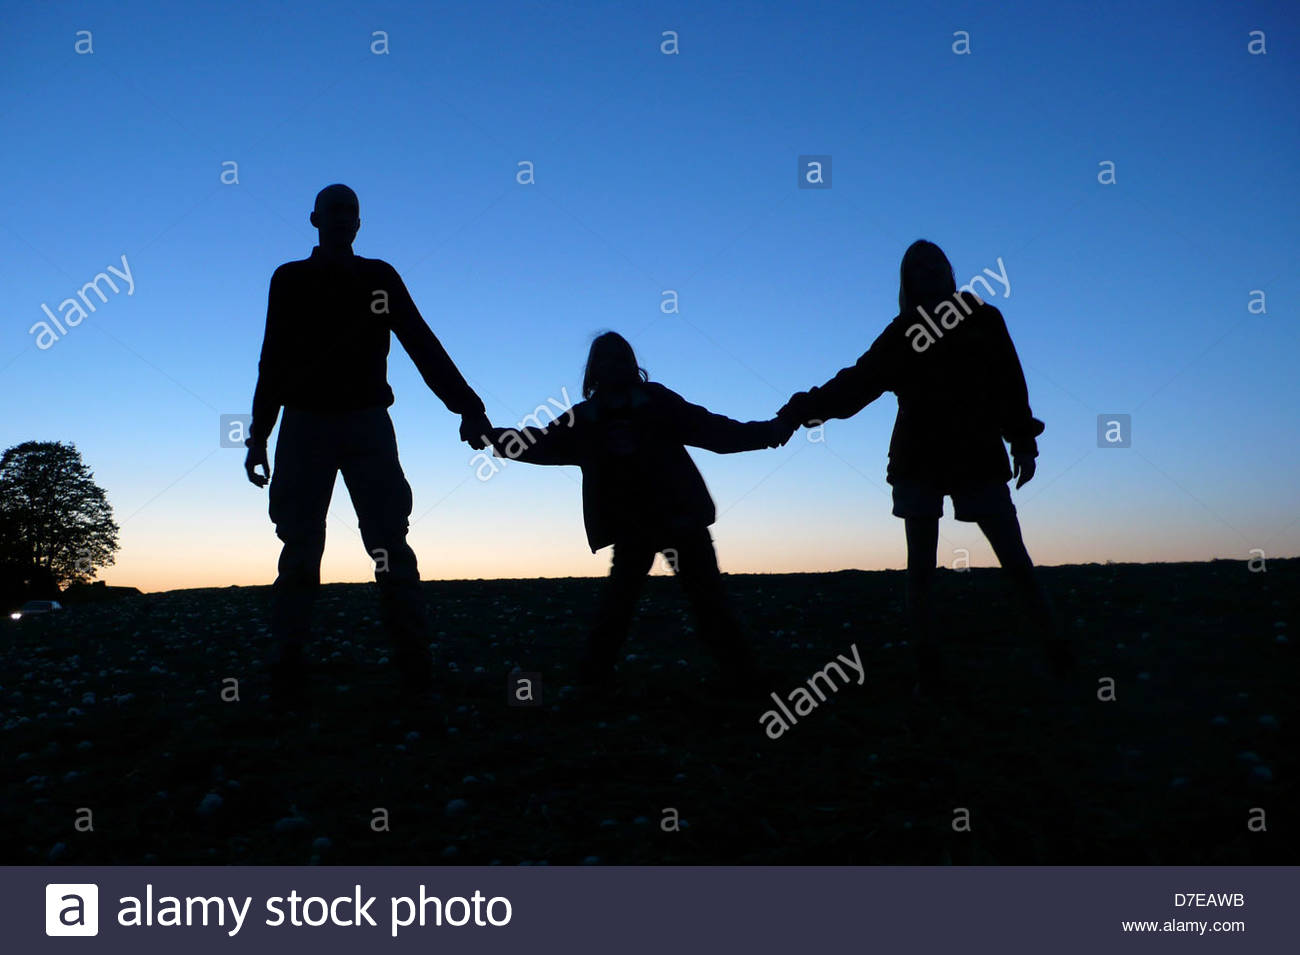 Silhouette of a family enjoying in a park - Stock Image